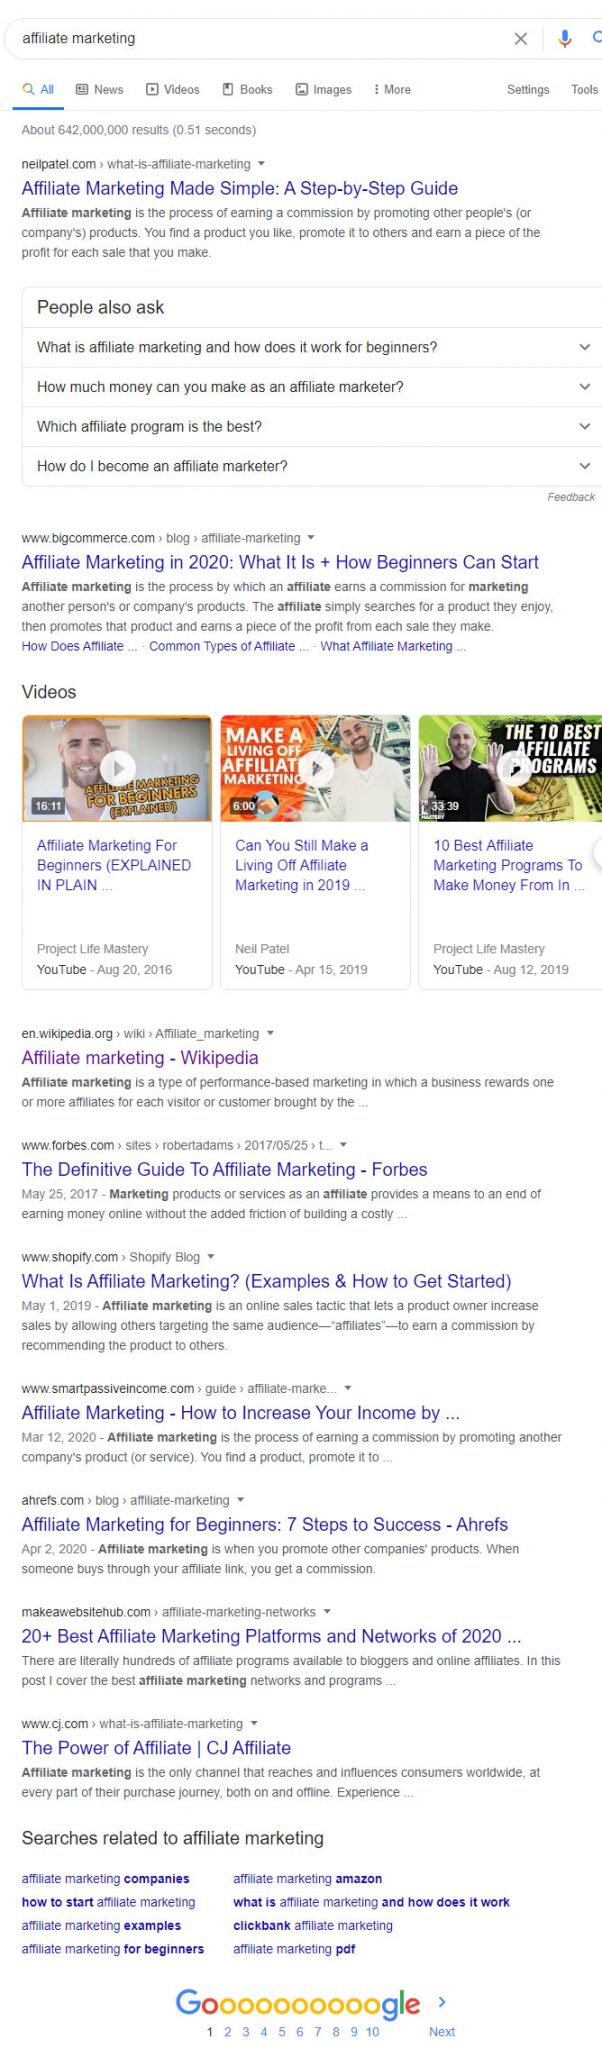 affiliate marketing results